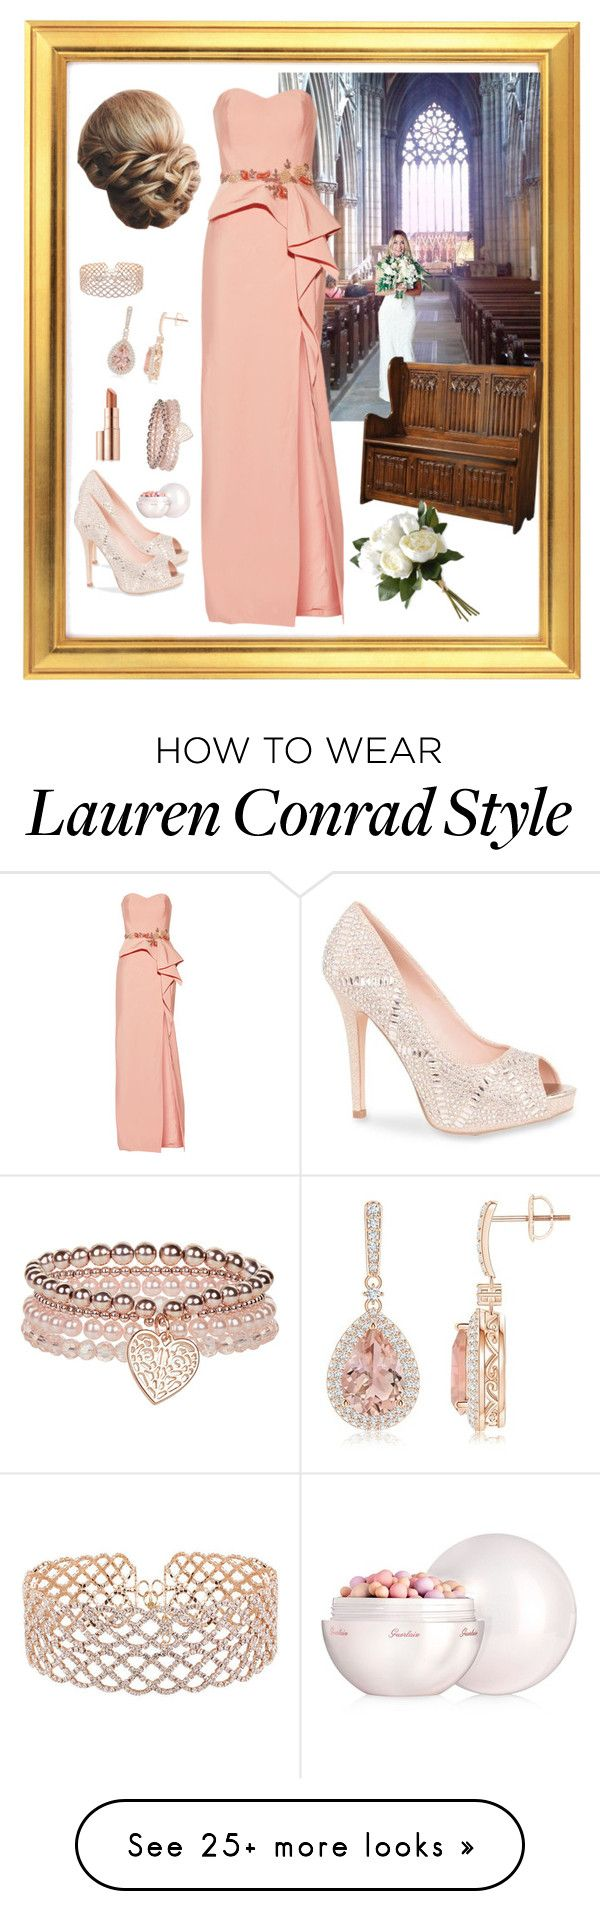 """""""Always the Bridesmaid - V"""" by mary-kay-de-jesus on Polyvore featuring Doncaster, Lauren Lorraine, Notte by Marchesa, Lauren Conrad, National Tree Company, Monsoon, WithChic, Estée Lauder and Guerlain"""